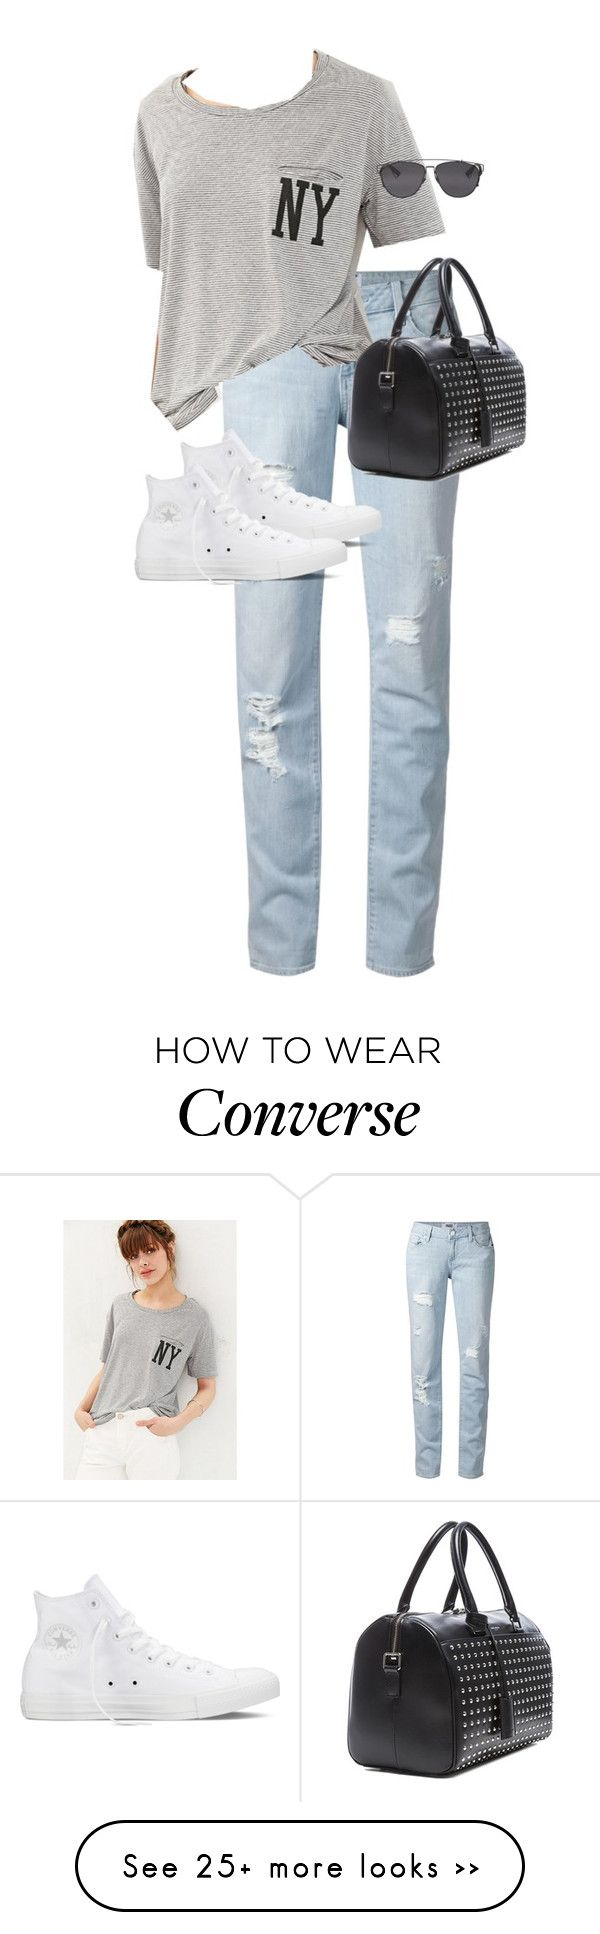 """Untitled #9721"" by alexsrogers on Polyvore featuring Paige Denim, BDG, Converse, Yves Saint Laurent and Christian Dior"